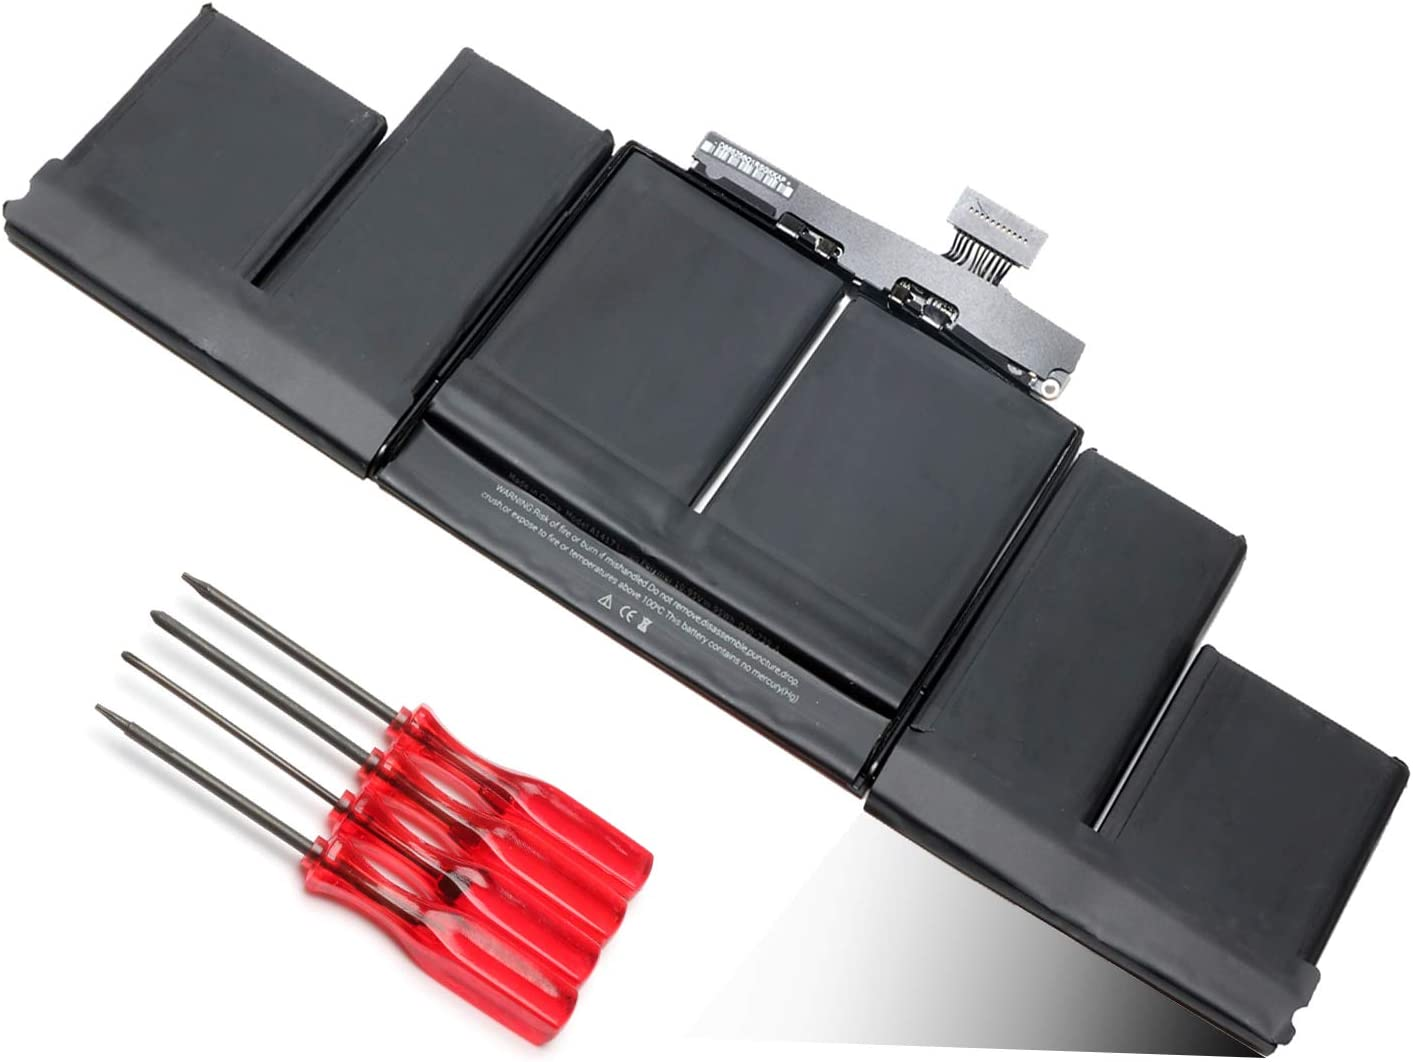 A1417 Laptop Battery Replacement for A1398 MacBook Pro 15 Inch Retina (2012 Early 2013 Version) MC975 MC976 ME664 ME665 MD831 MC975LL/A MC976LL/A ME665LL/A ME664LL/A MD831LL/A 020-7469-A